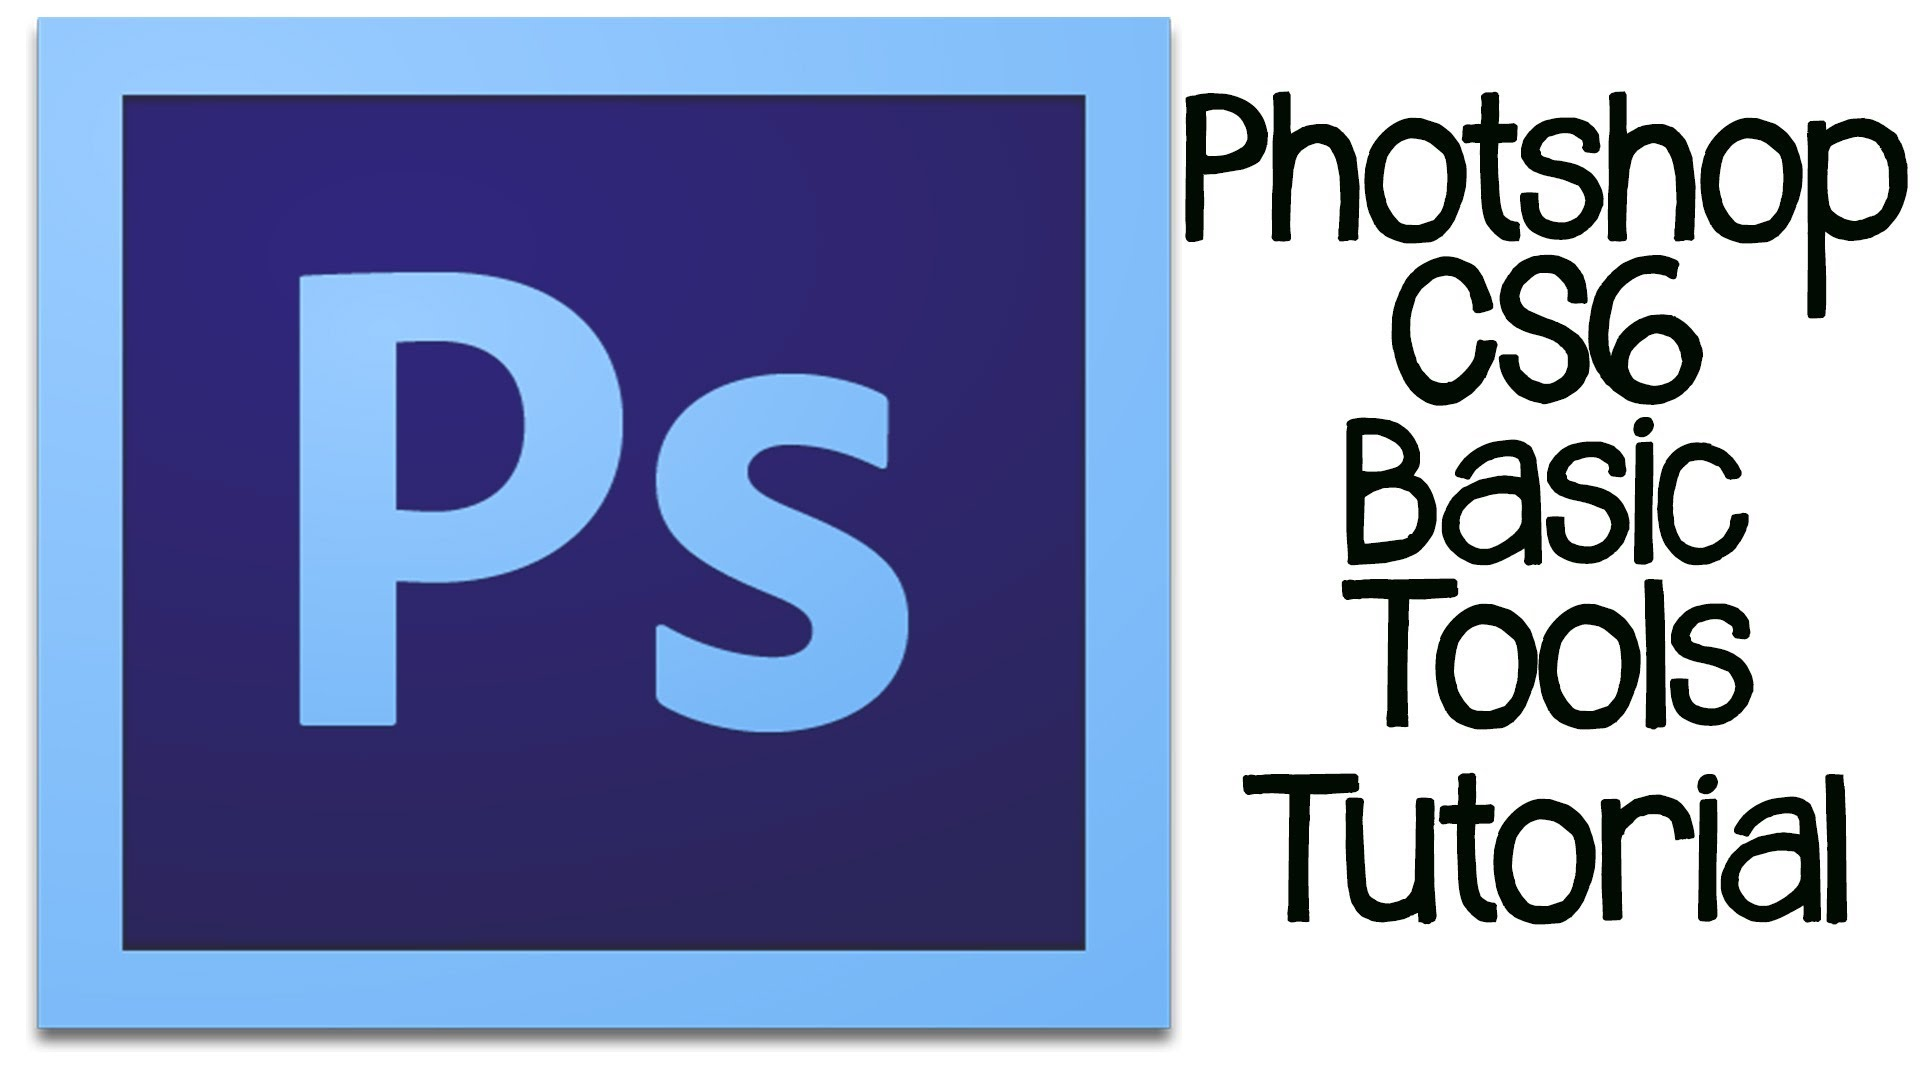 Adobe photoshop cs6 how to create a collage collage effect adobe photoshop cs6 how to create a collage collage effect photoshop pinterest collage collage photoshop and adobe photoshop baditri Gallery